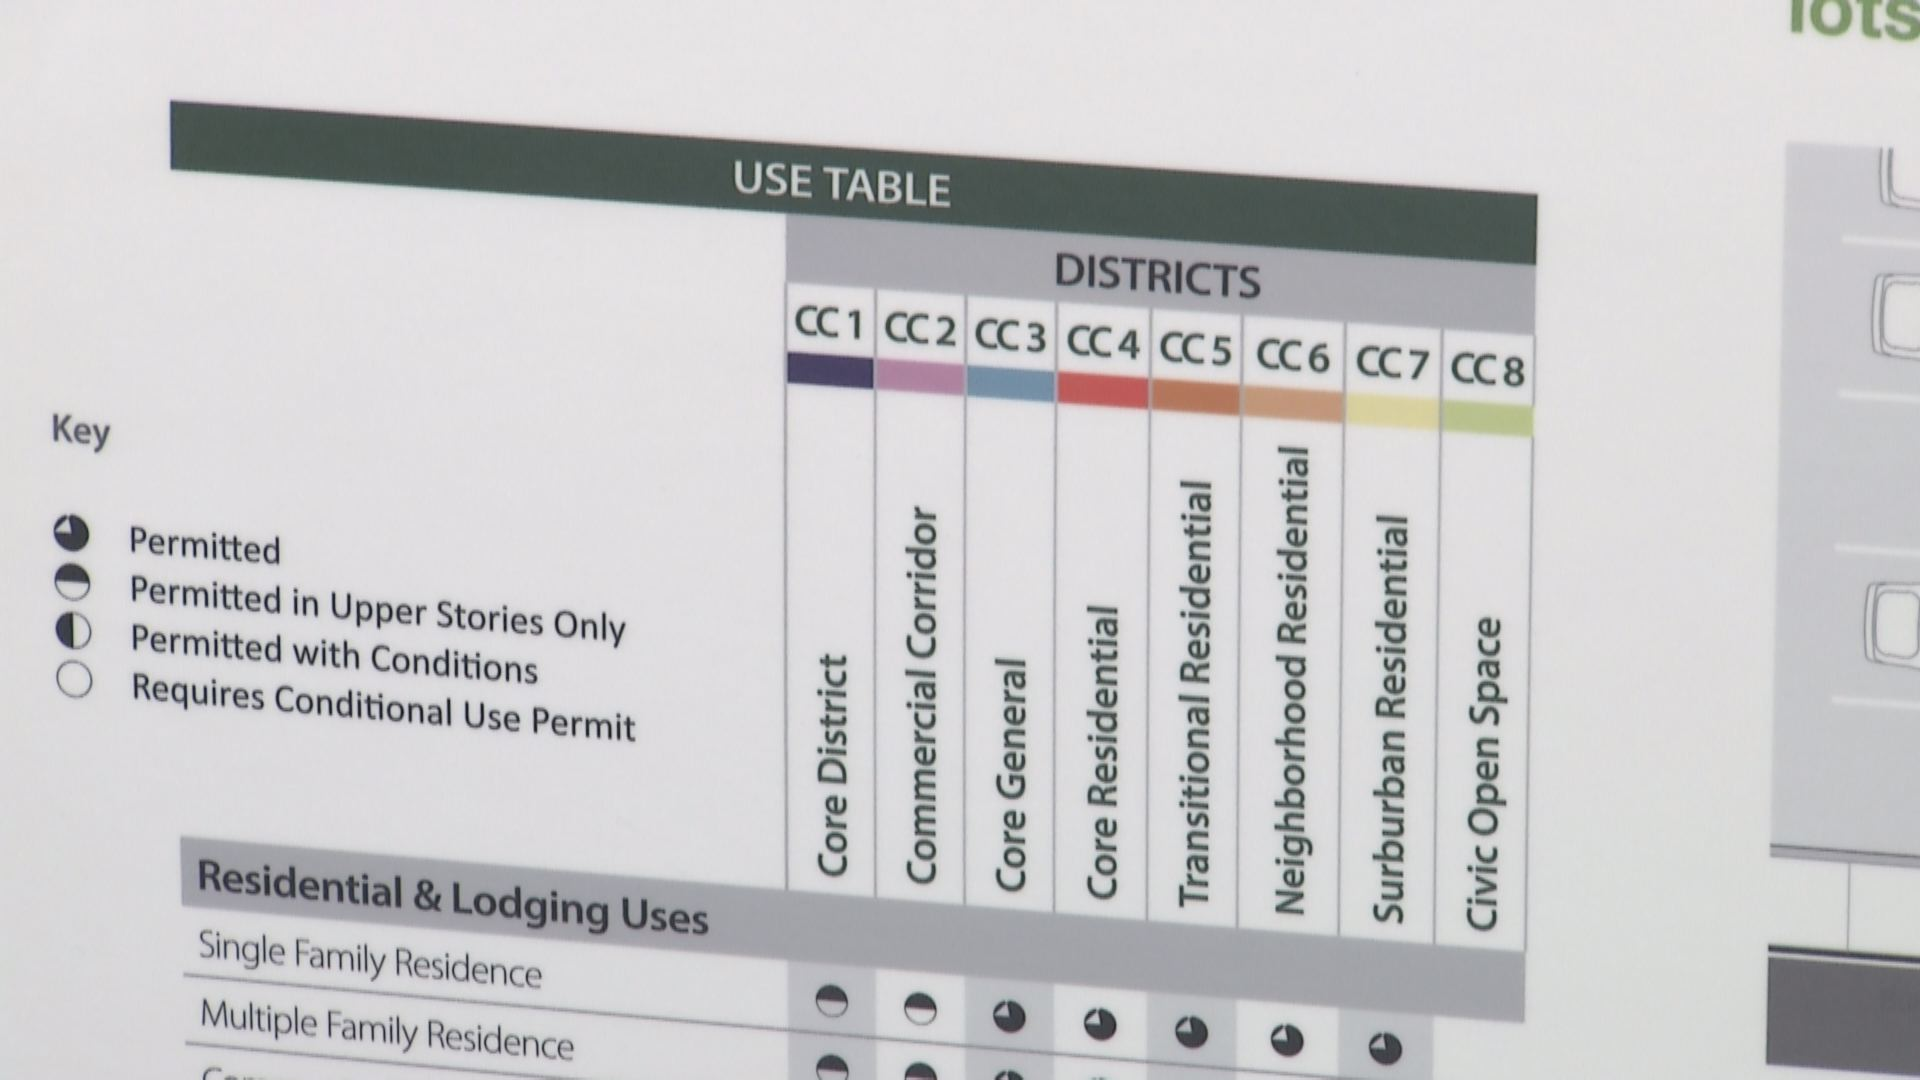 The city of Grovetown voted on a recommendation to rezone 45